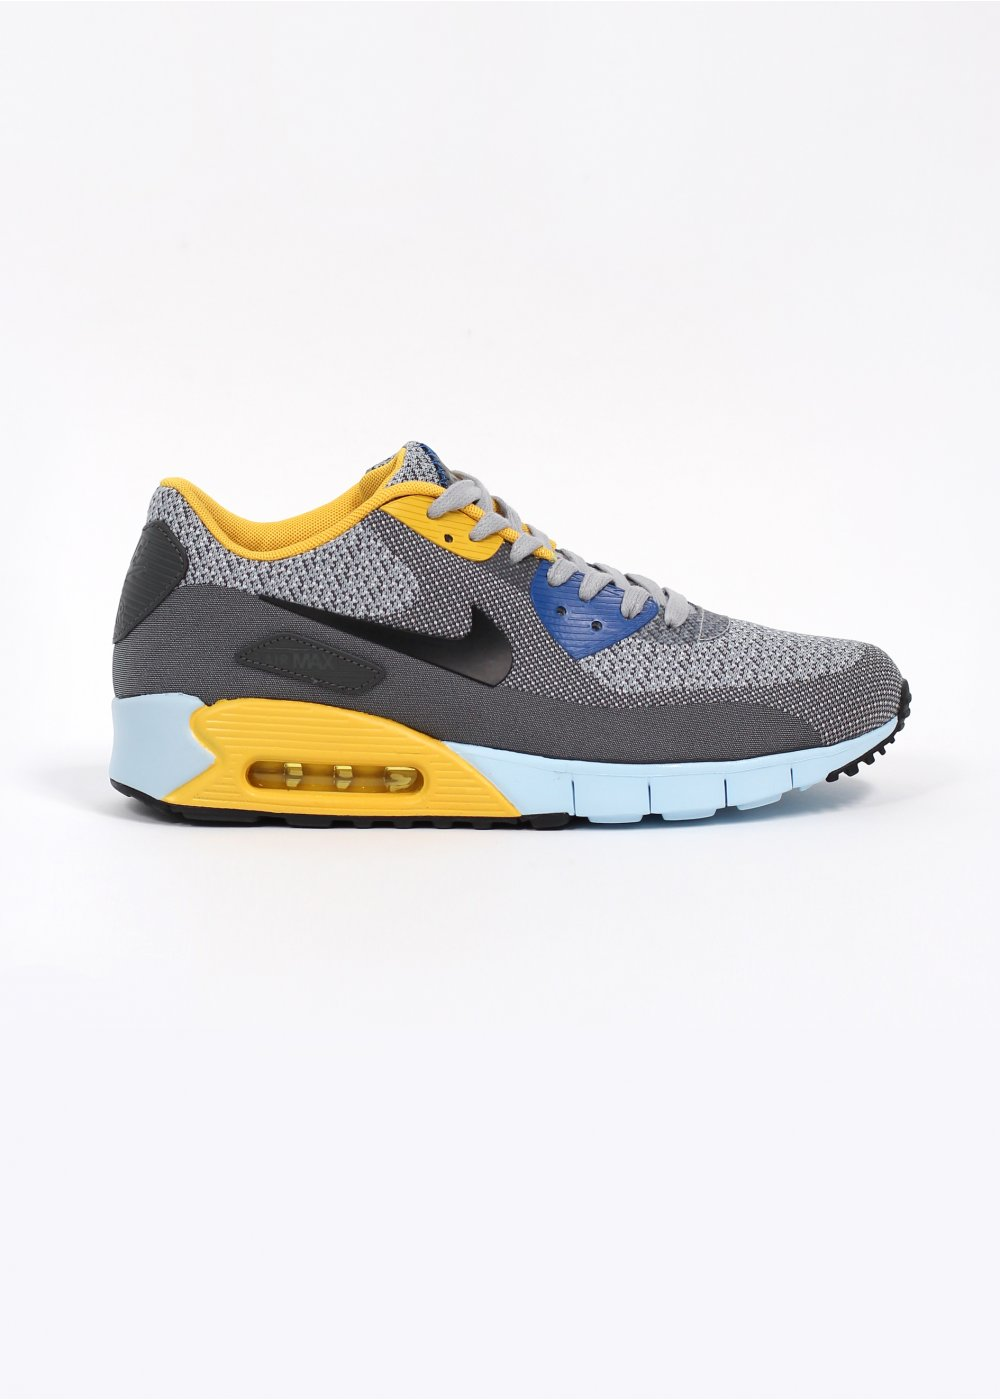 official photos 268e3 c76c0 QS Air Max 90 JCRD Paris   039 City Pack  039  Trainers